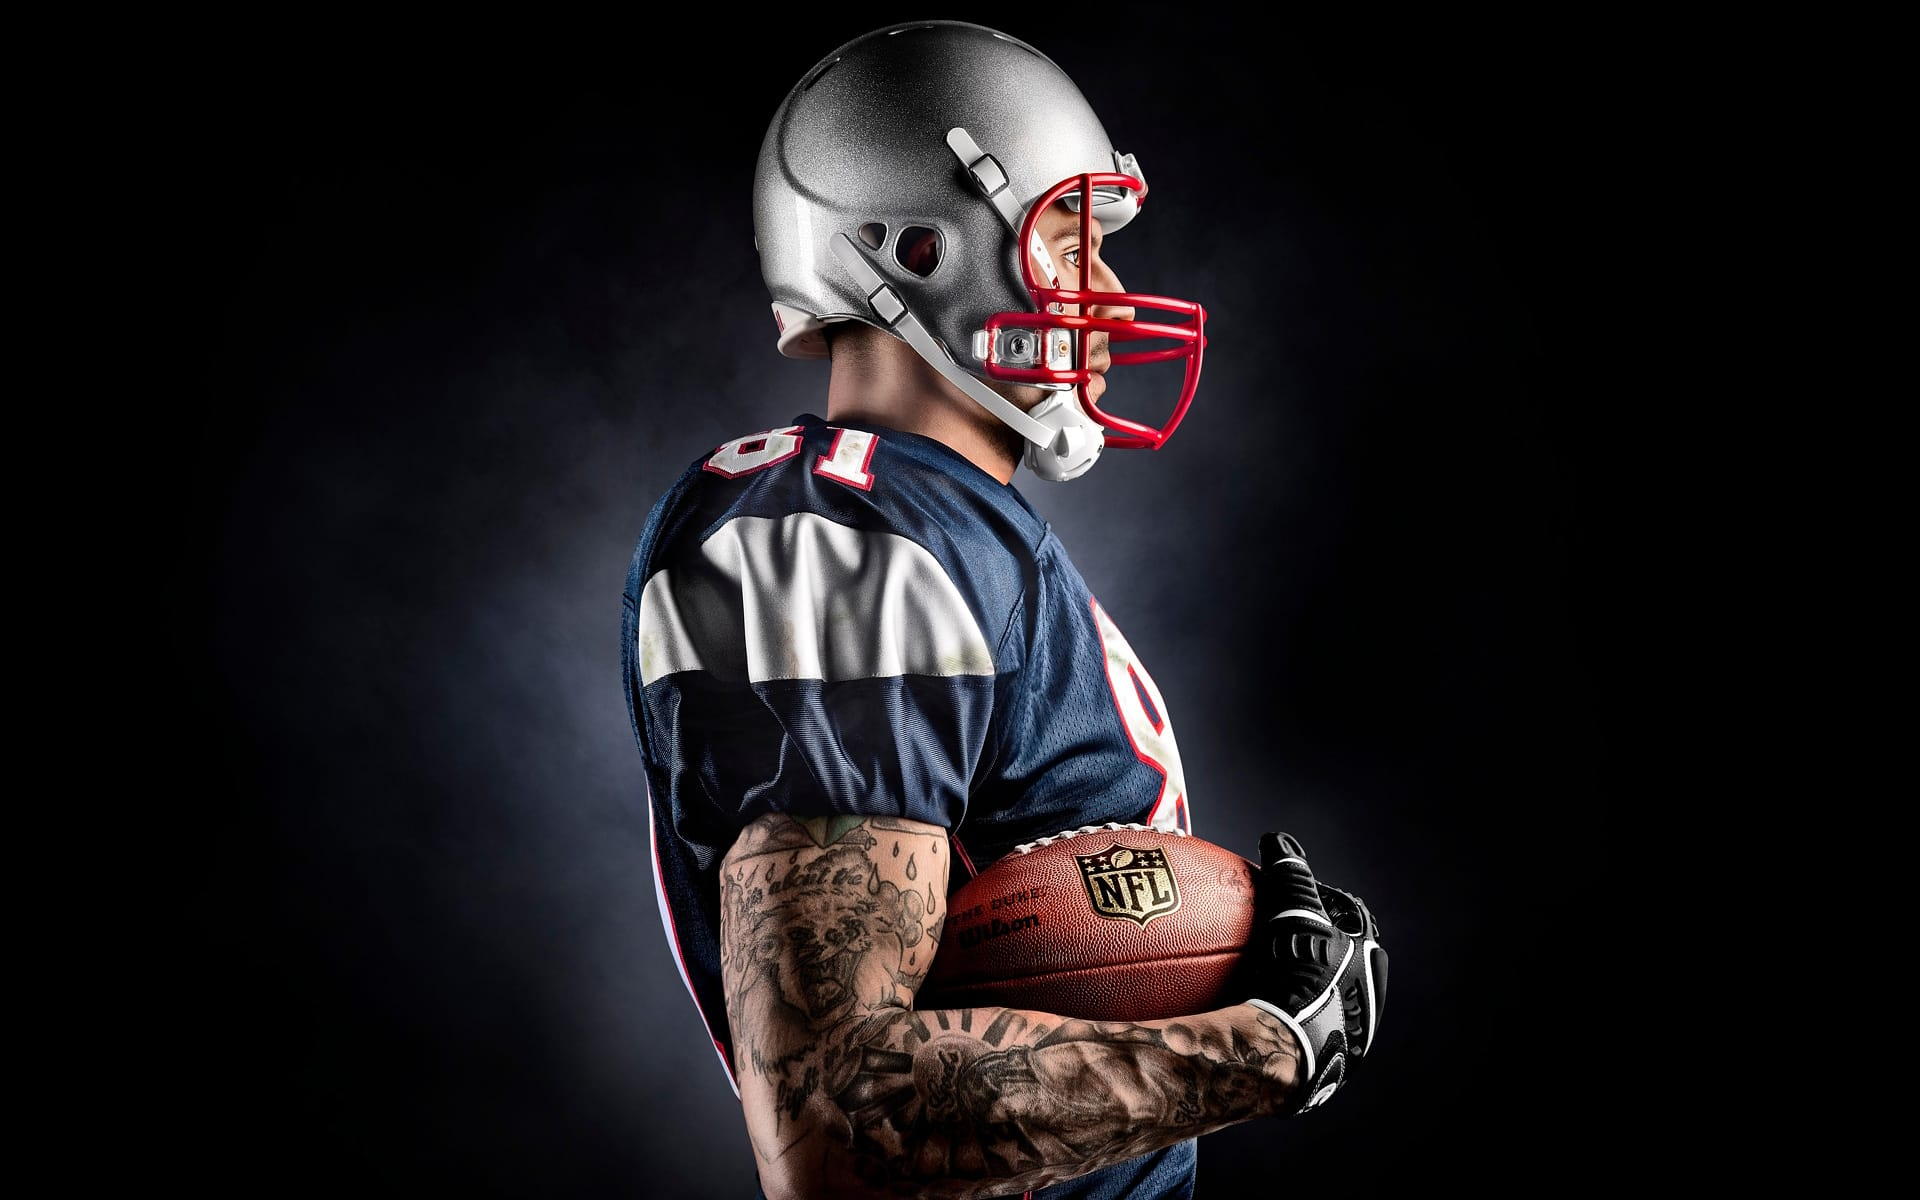 Aaron Hernandez photographed by Blair Bunting